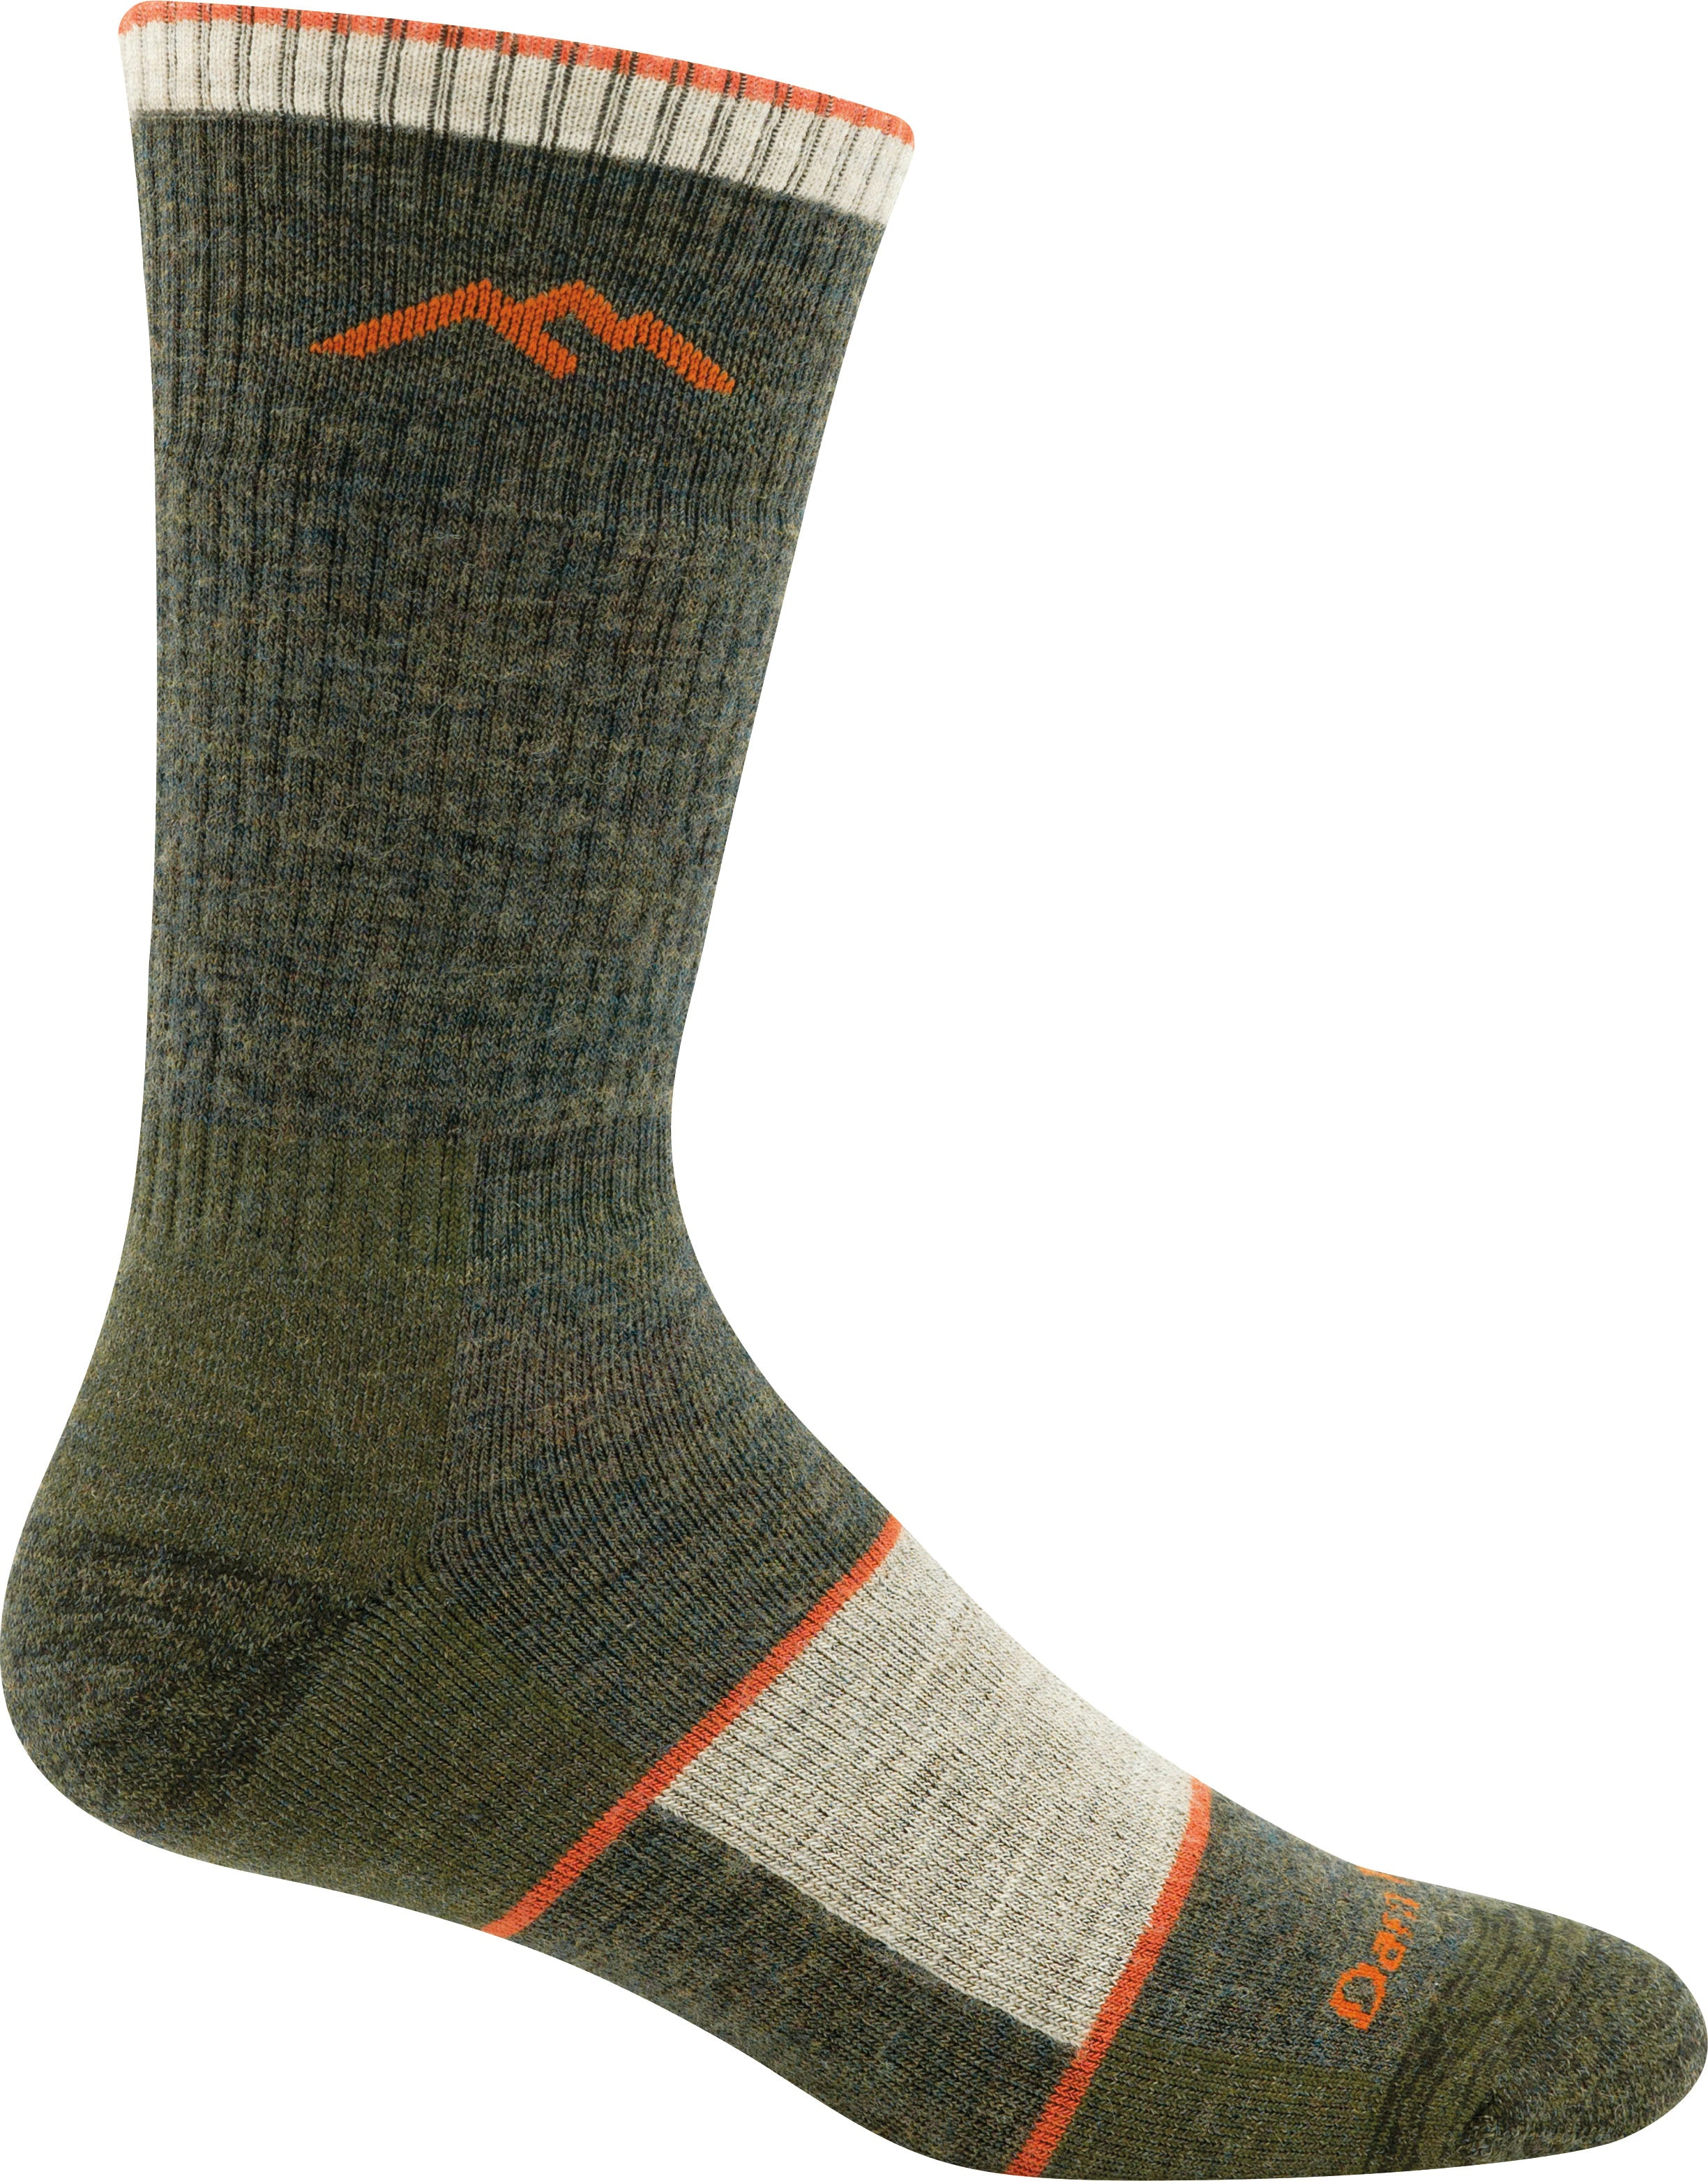 Darn Tough 1405 Men's Hiker Boot Sock Full Cushion